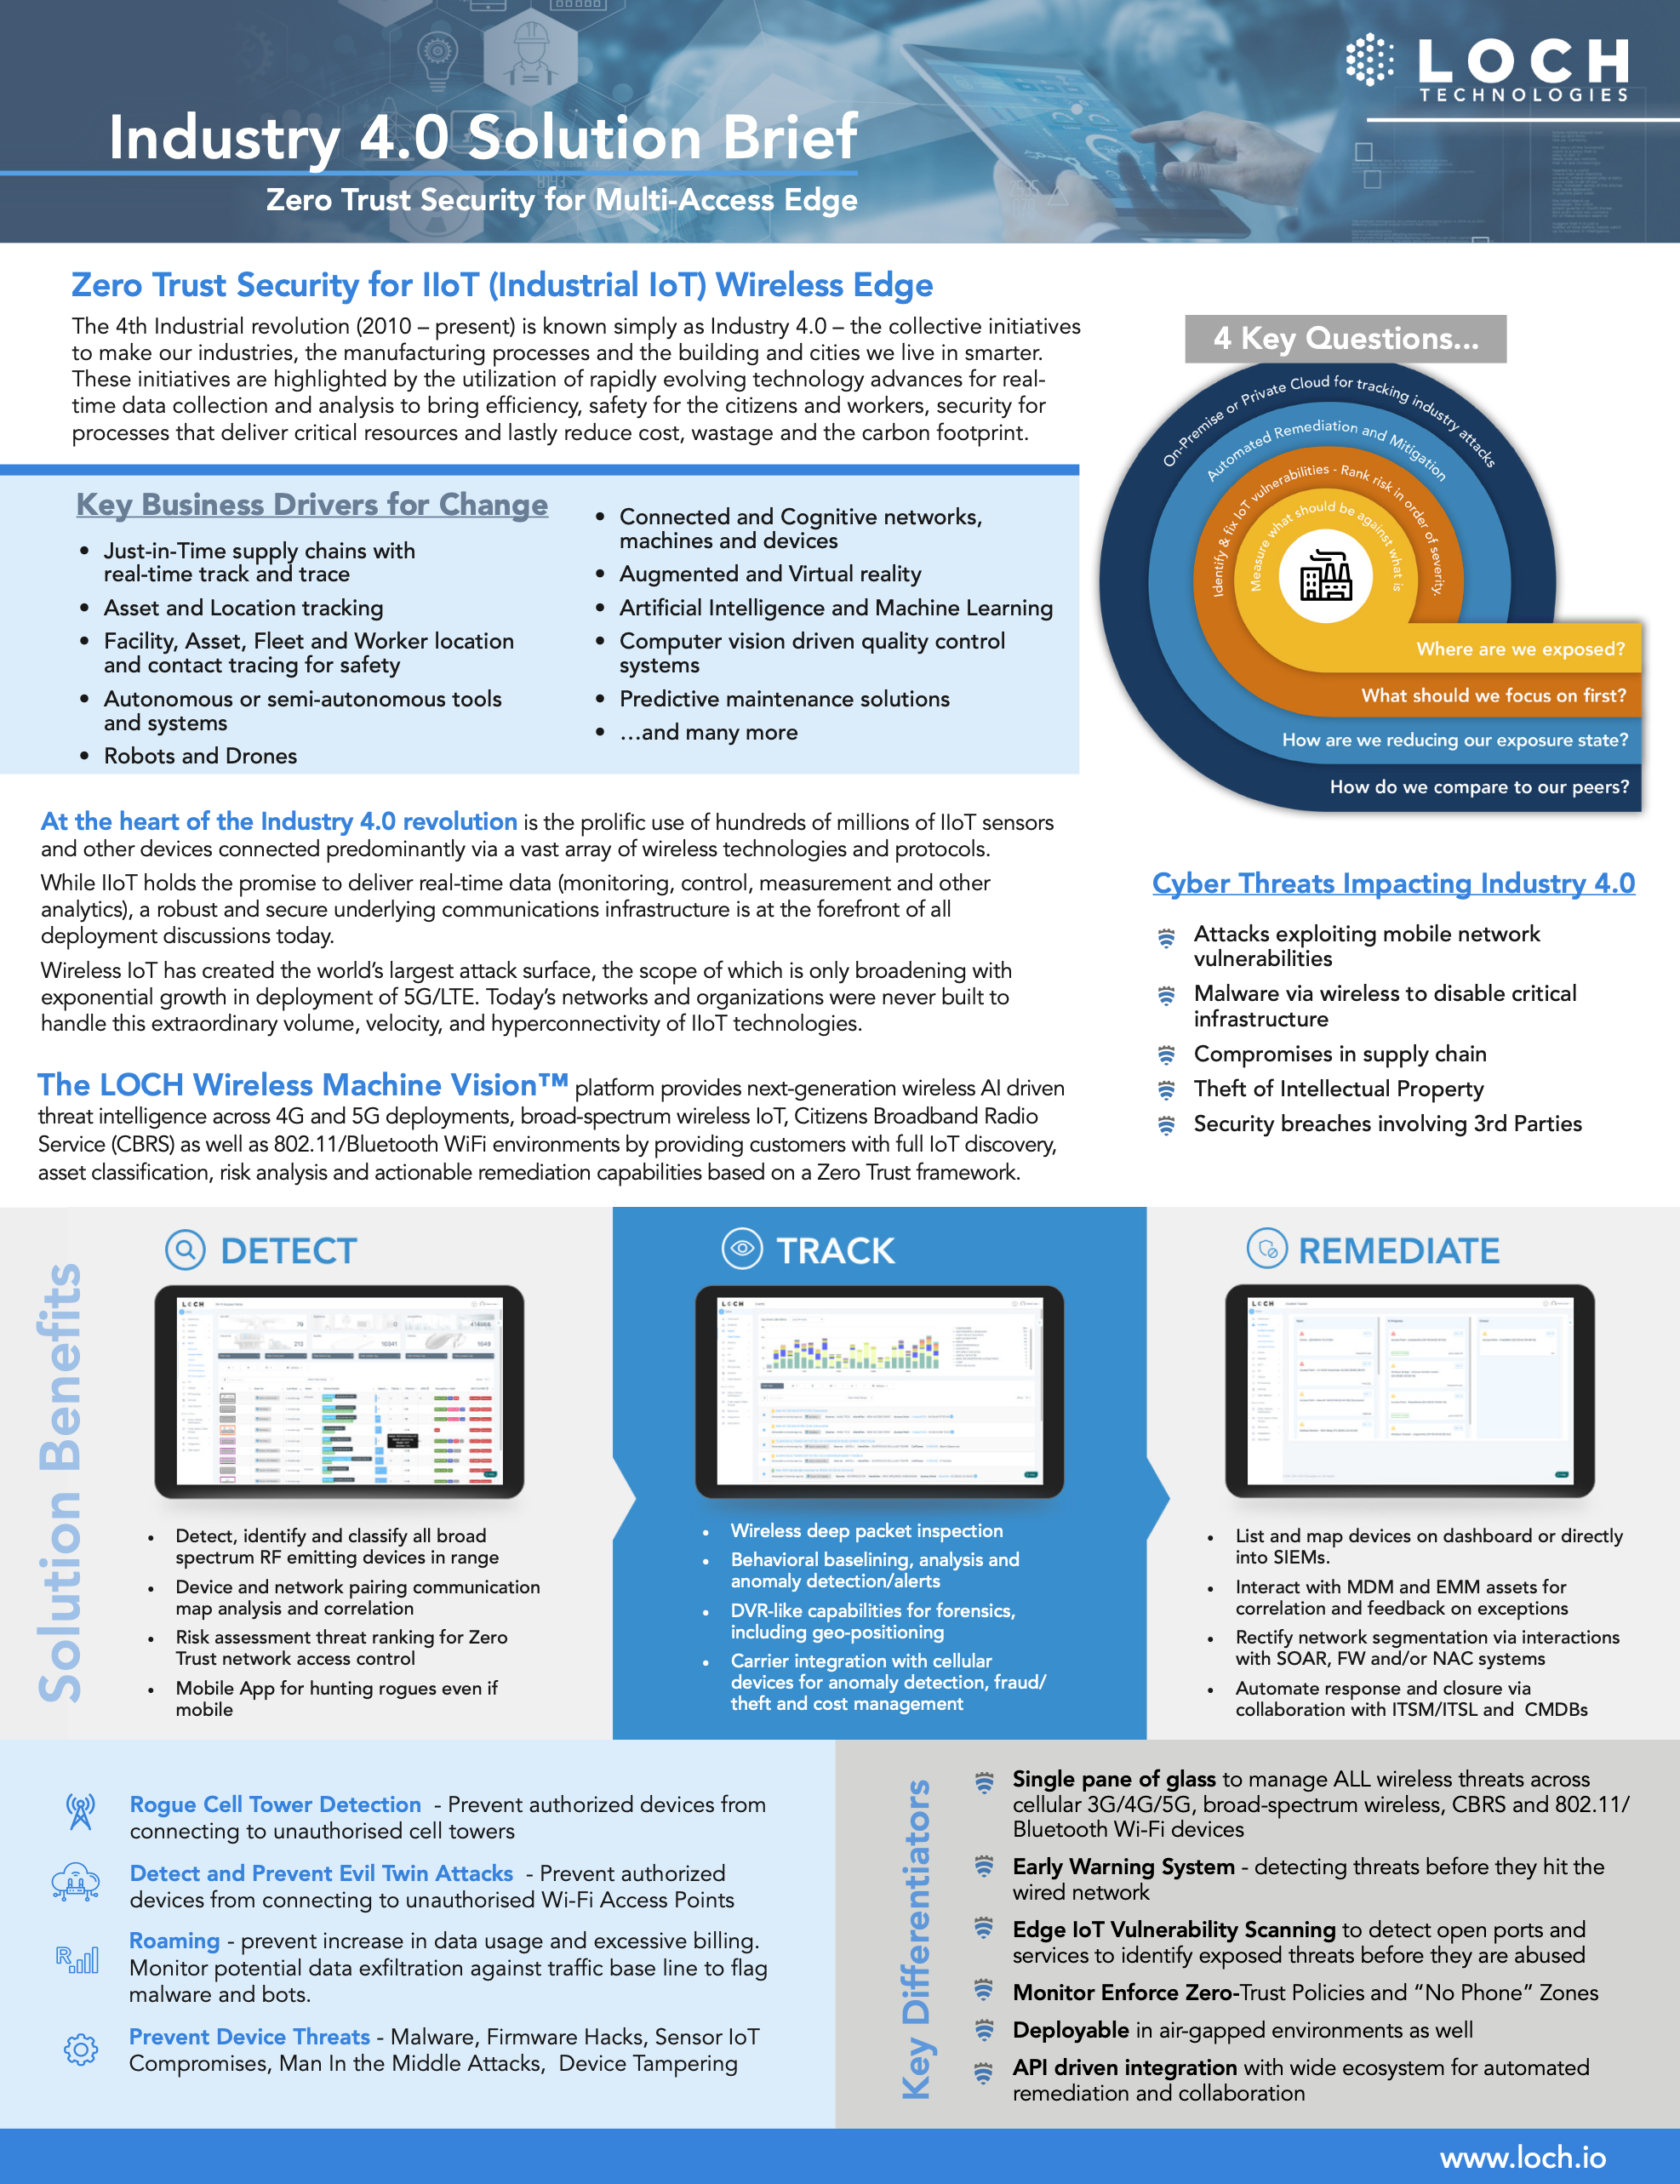 Industry 4.0 Solution Brief